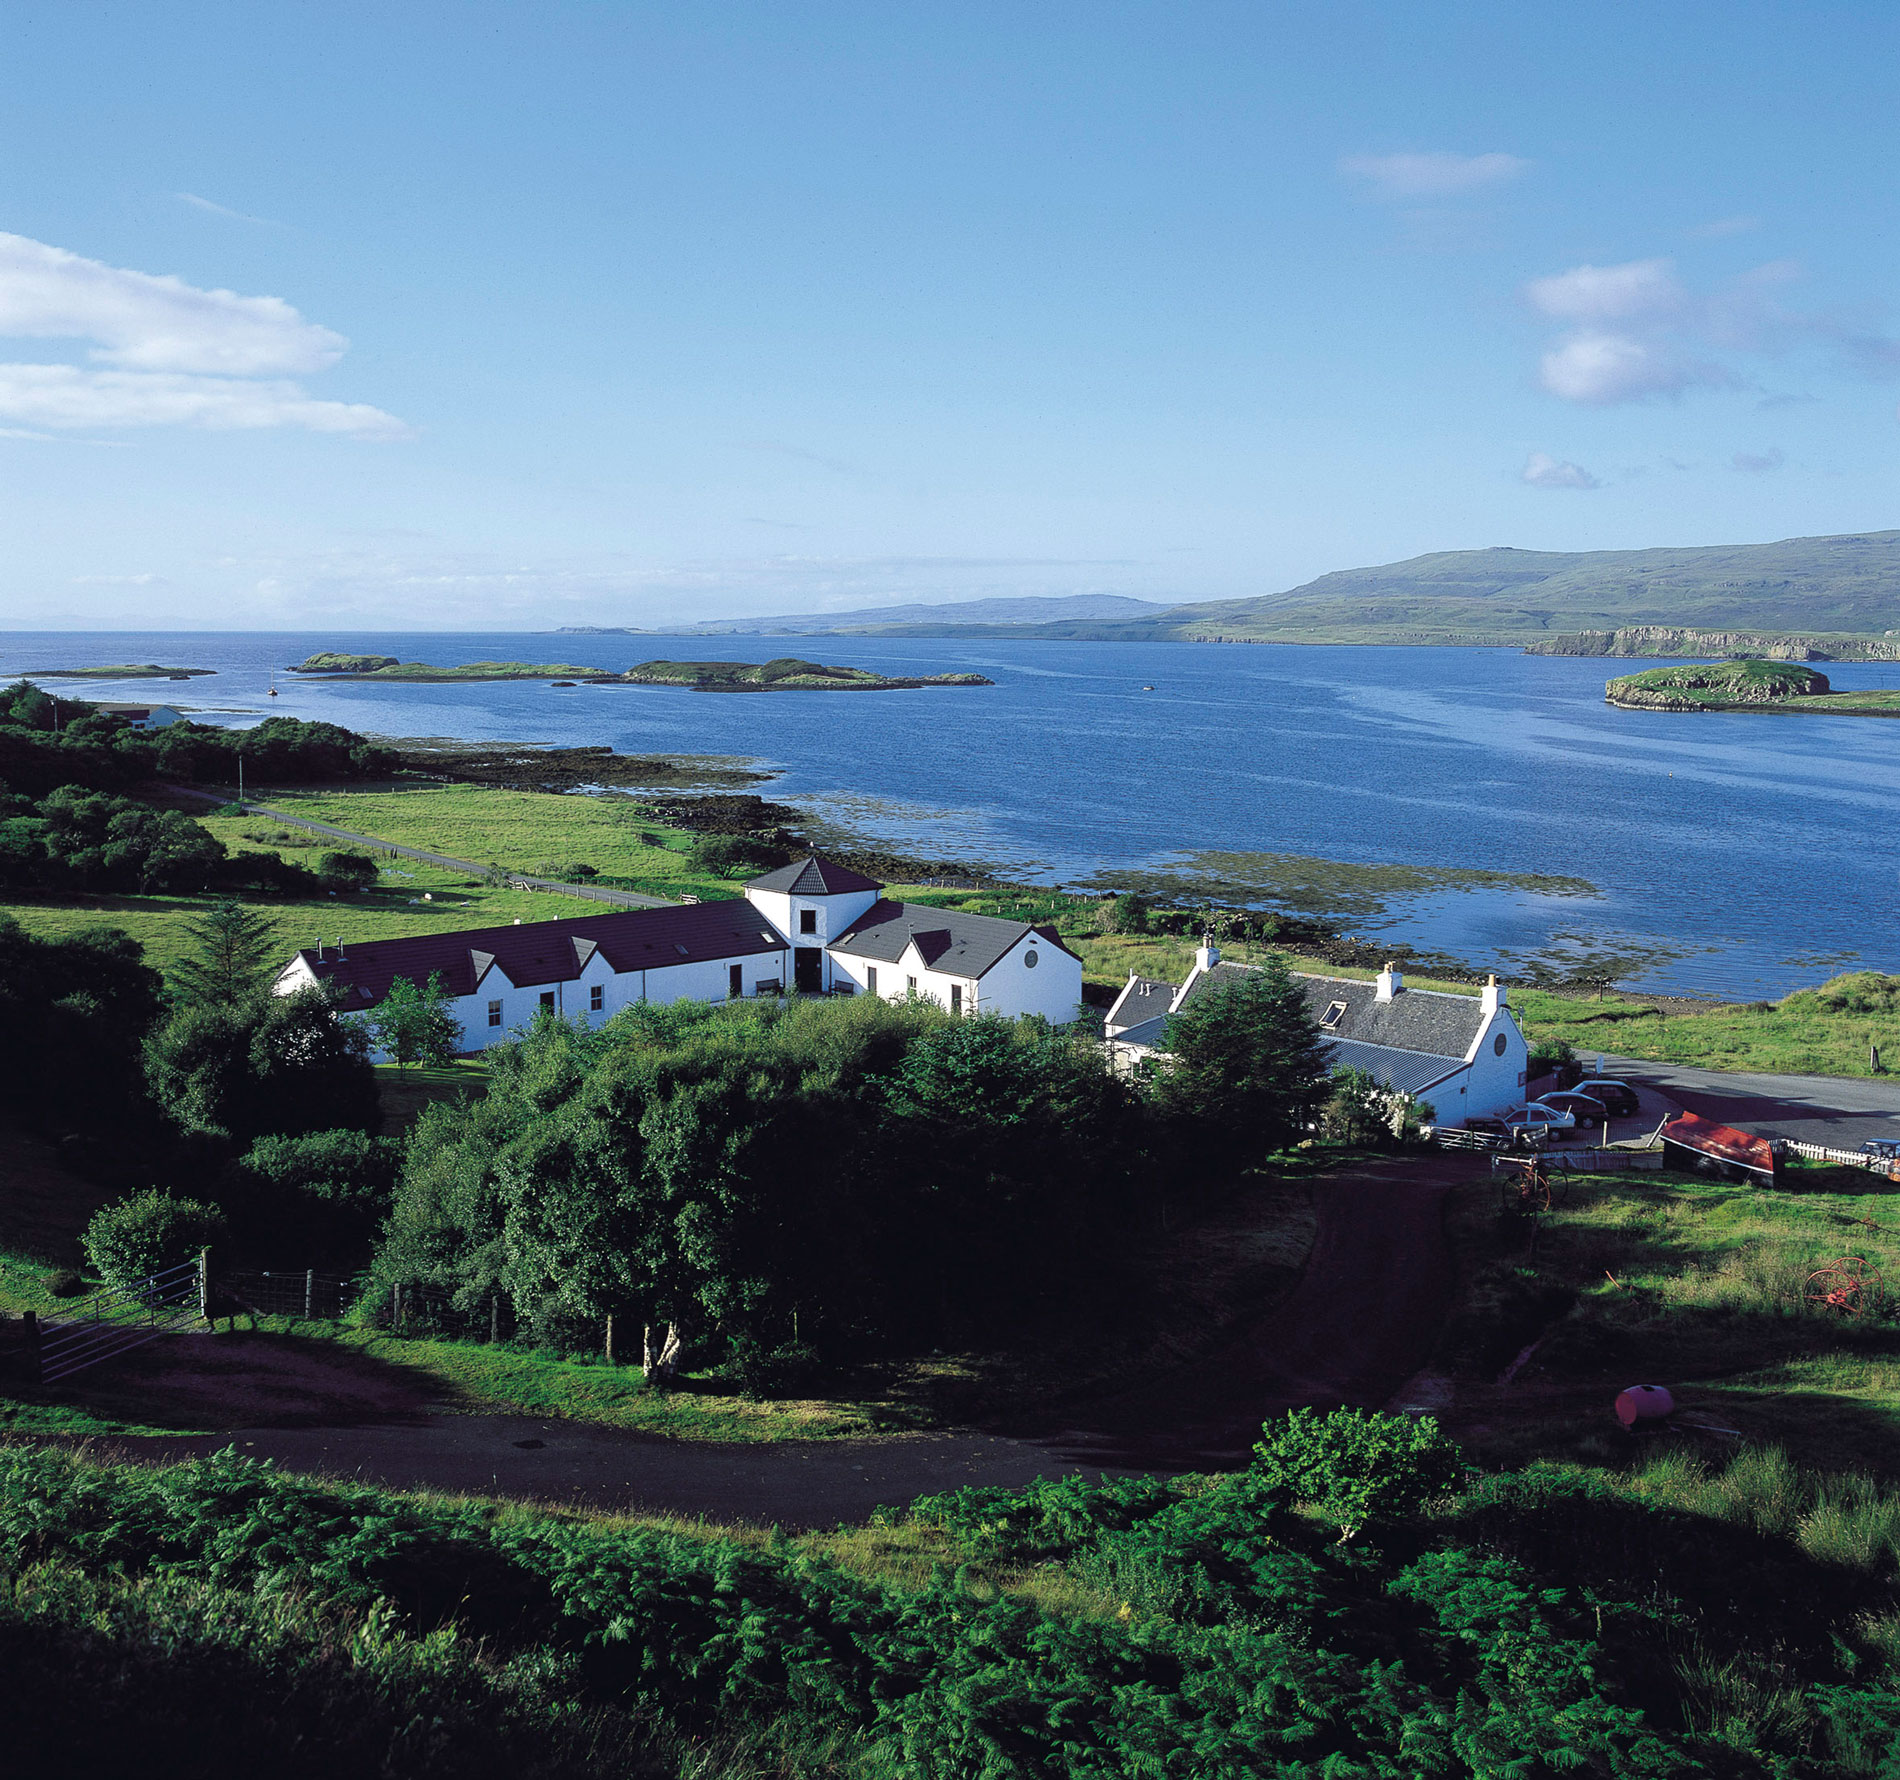 Looking over the roof of The Three Chimneys towards Loch Dunvegan. Photo courtesy The Three Chimneys